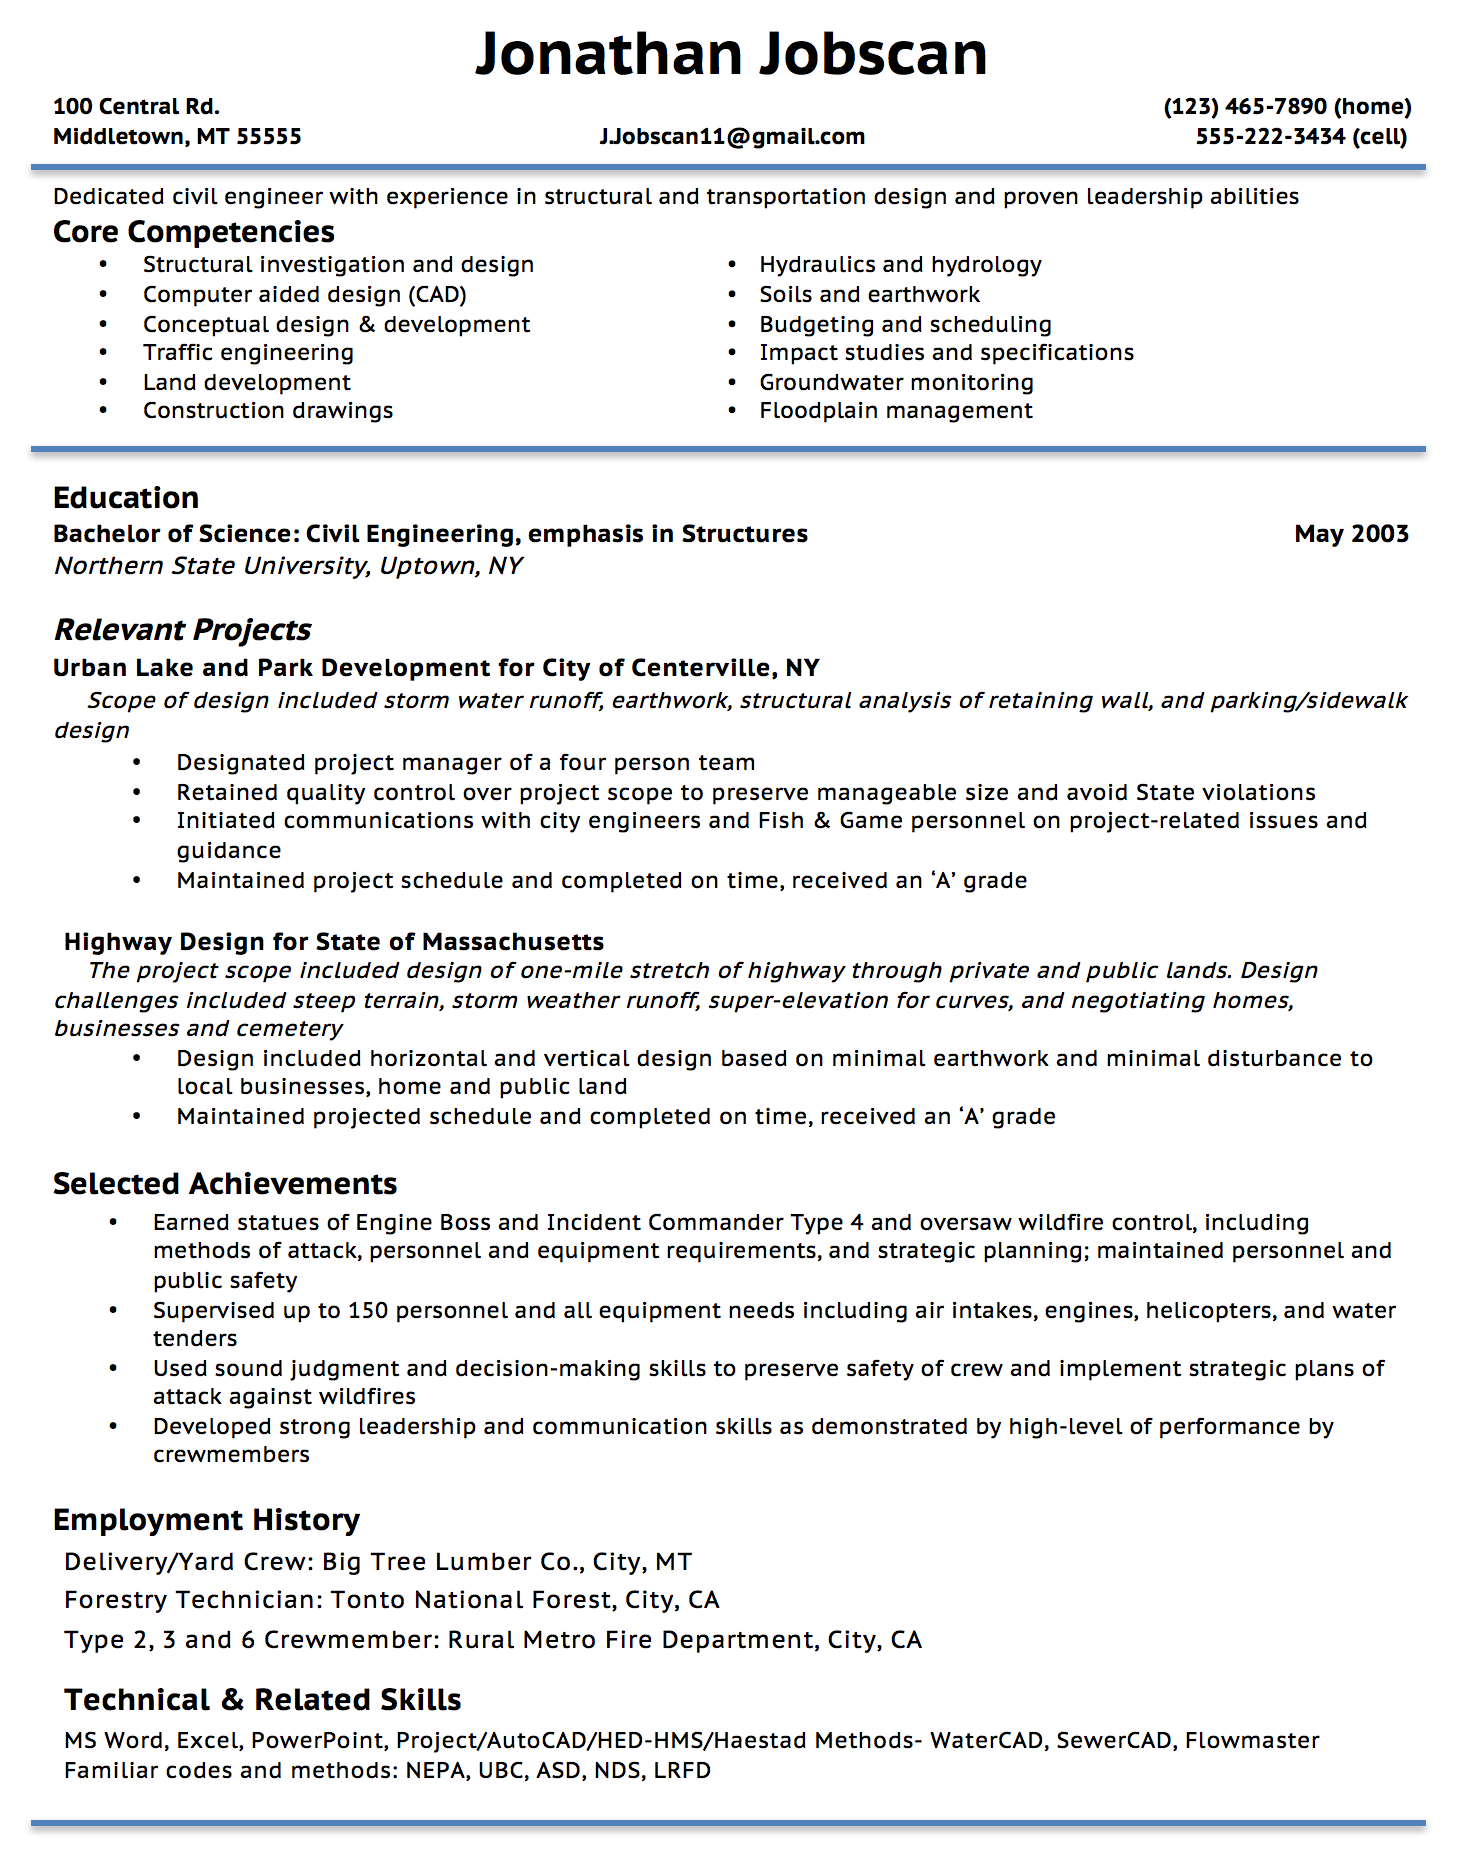 Opposenewapstandardsus  Prepossessing Resume Writing Guide  Jobscan With Extraordinary Example Of A Functional Resume Format With Astounding Patient Care Technician Resume Also Word Template Resume In Addition Should I Staple My Resume And  Page Resume Format As Well As Resume Pro Additionally Objective For Customer Service Resume From Jobscanco With Opposenewapstandardsus  Extraordinary Resume Writing Guide  Jobscan With Astounding Example Of A Functional Resume Format And Prepossessing Patient Care Technician Resume Also Word Template Resume In Addition Should I Staple My Resume From Jobscanco